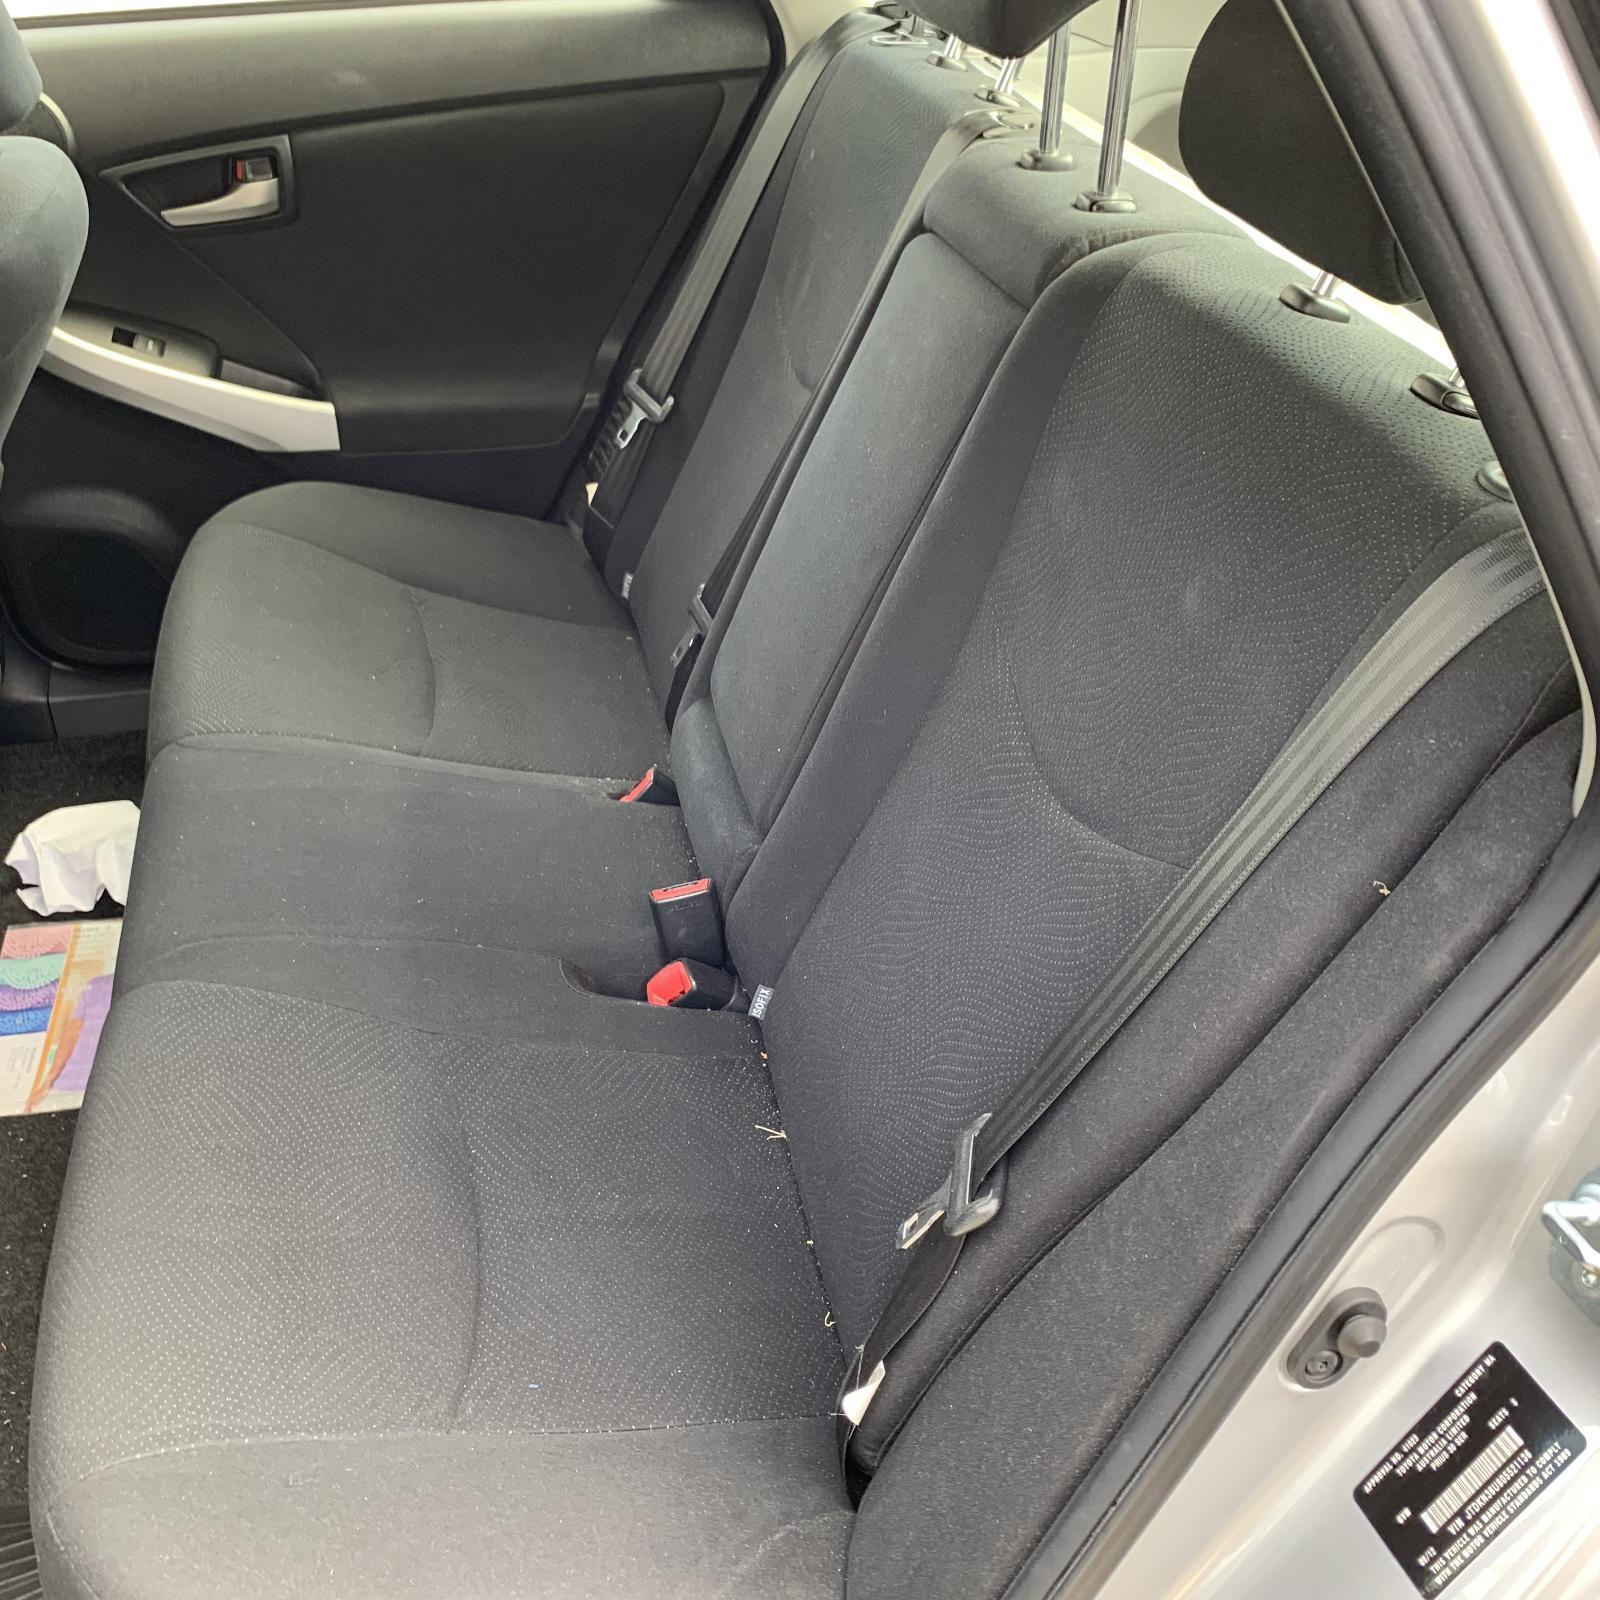 TOYOTA PRIUS, 2nd Seat (Rear Seat), RH REAR, ZVW30R, CLOTH, GREY, 07/09-12/15